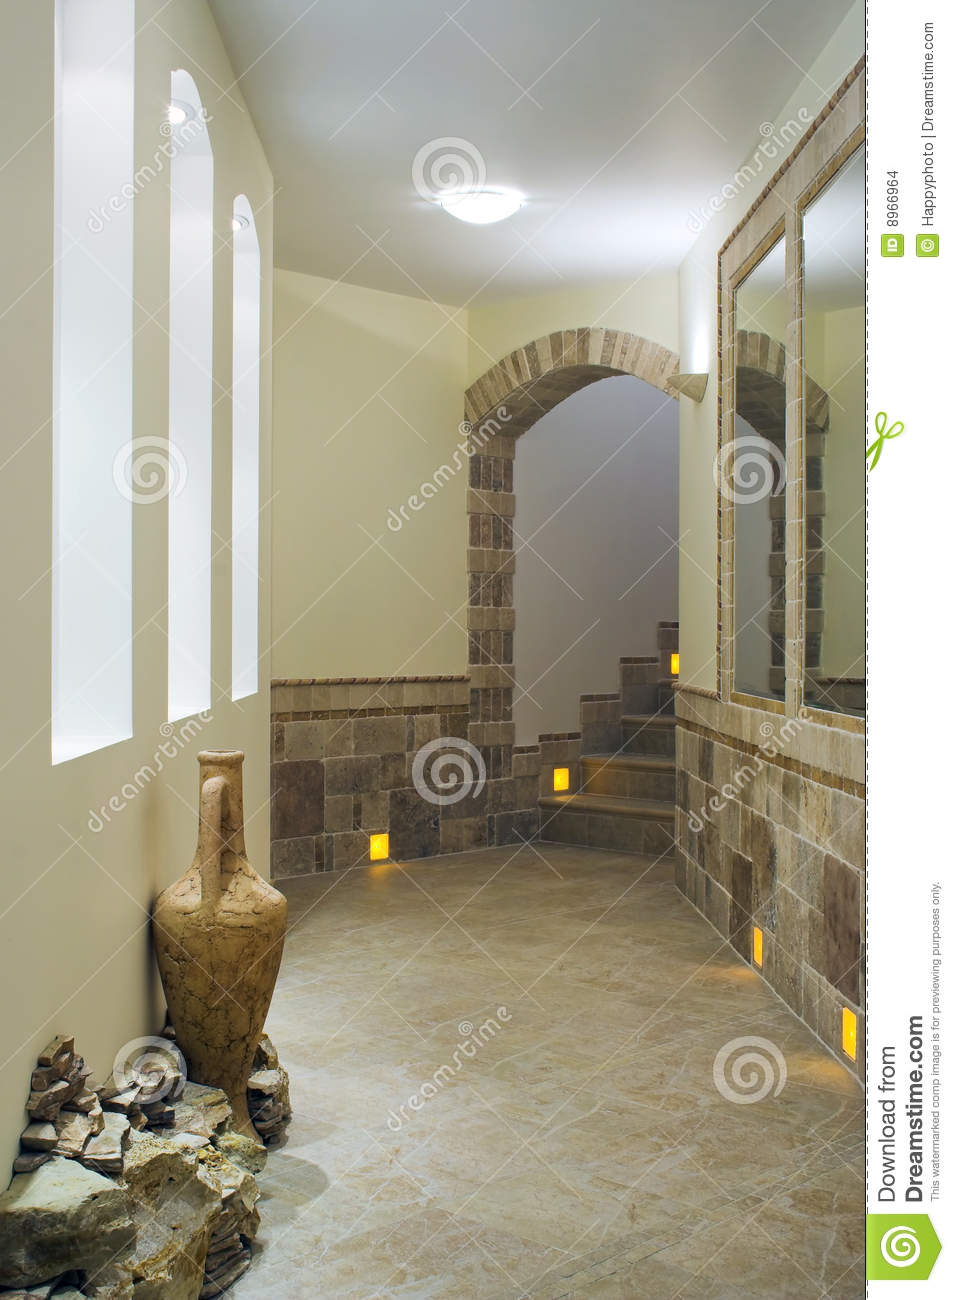 Hall interior with staircase stock images image 8966964 for Hall interior images